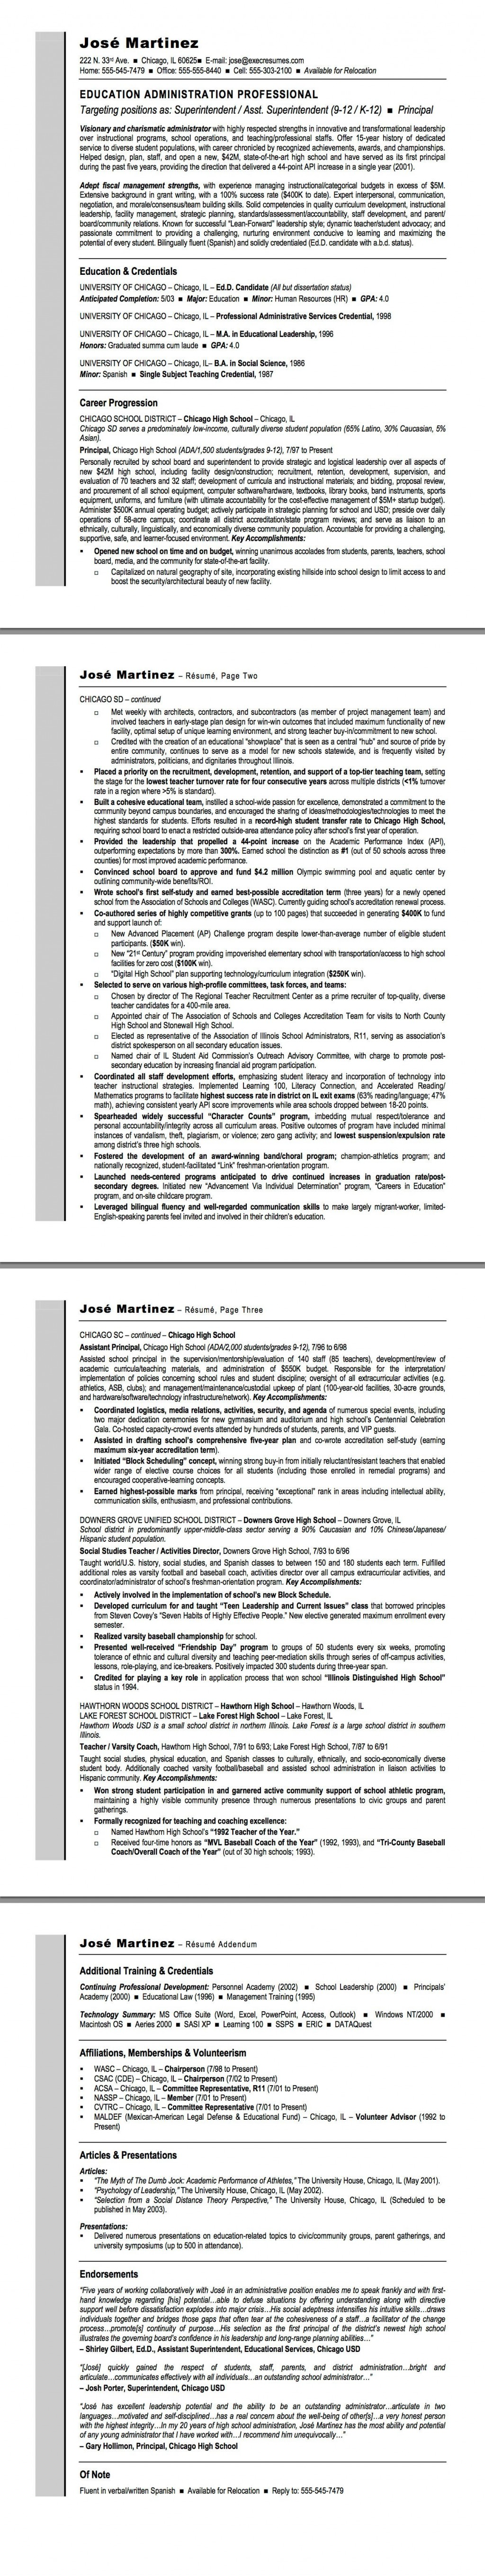 015 Component Of Research Paper Ppt Educational Administrator Sample Resume Wondrous Parts Chapter 1-5 1 Large